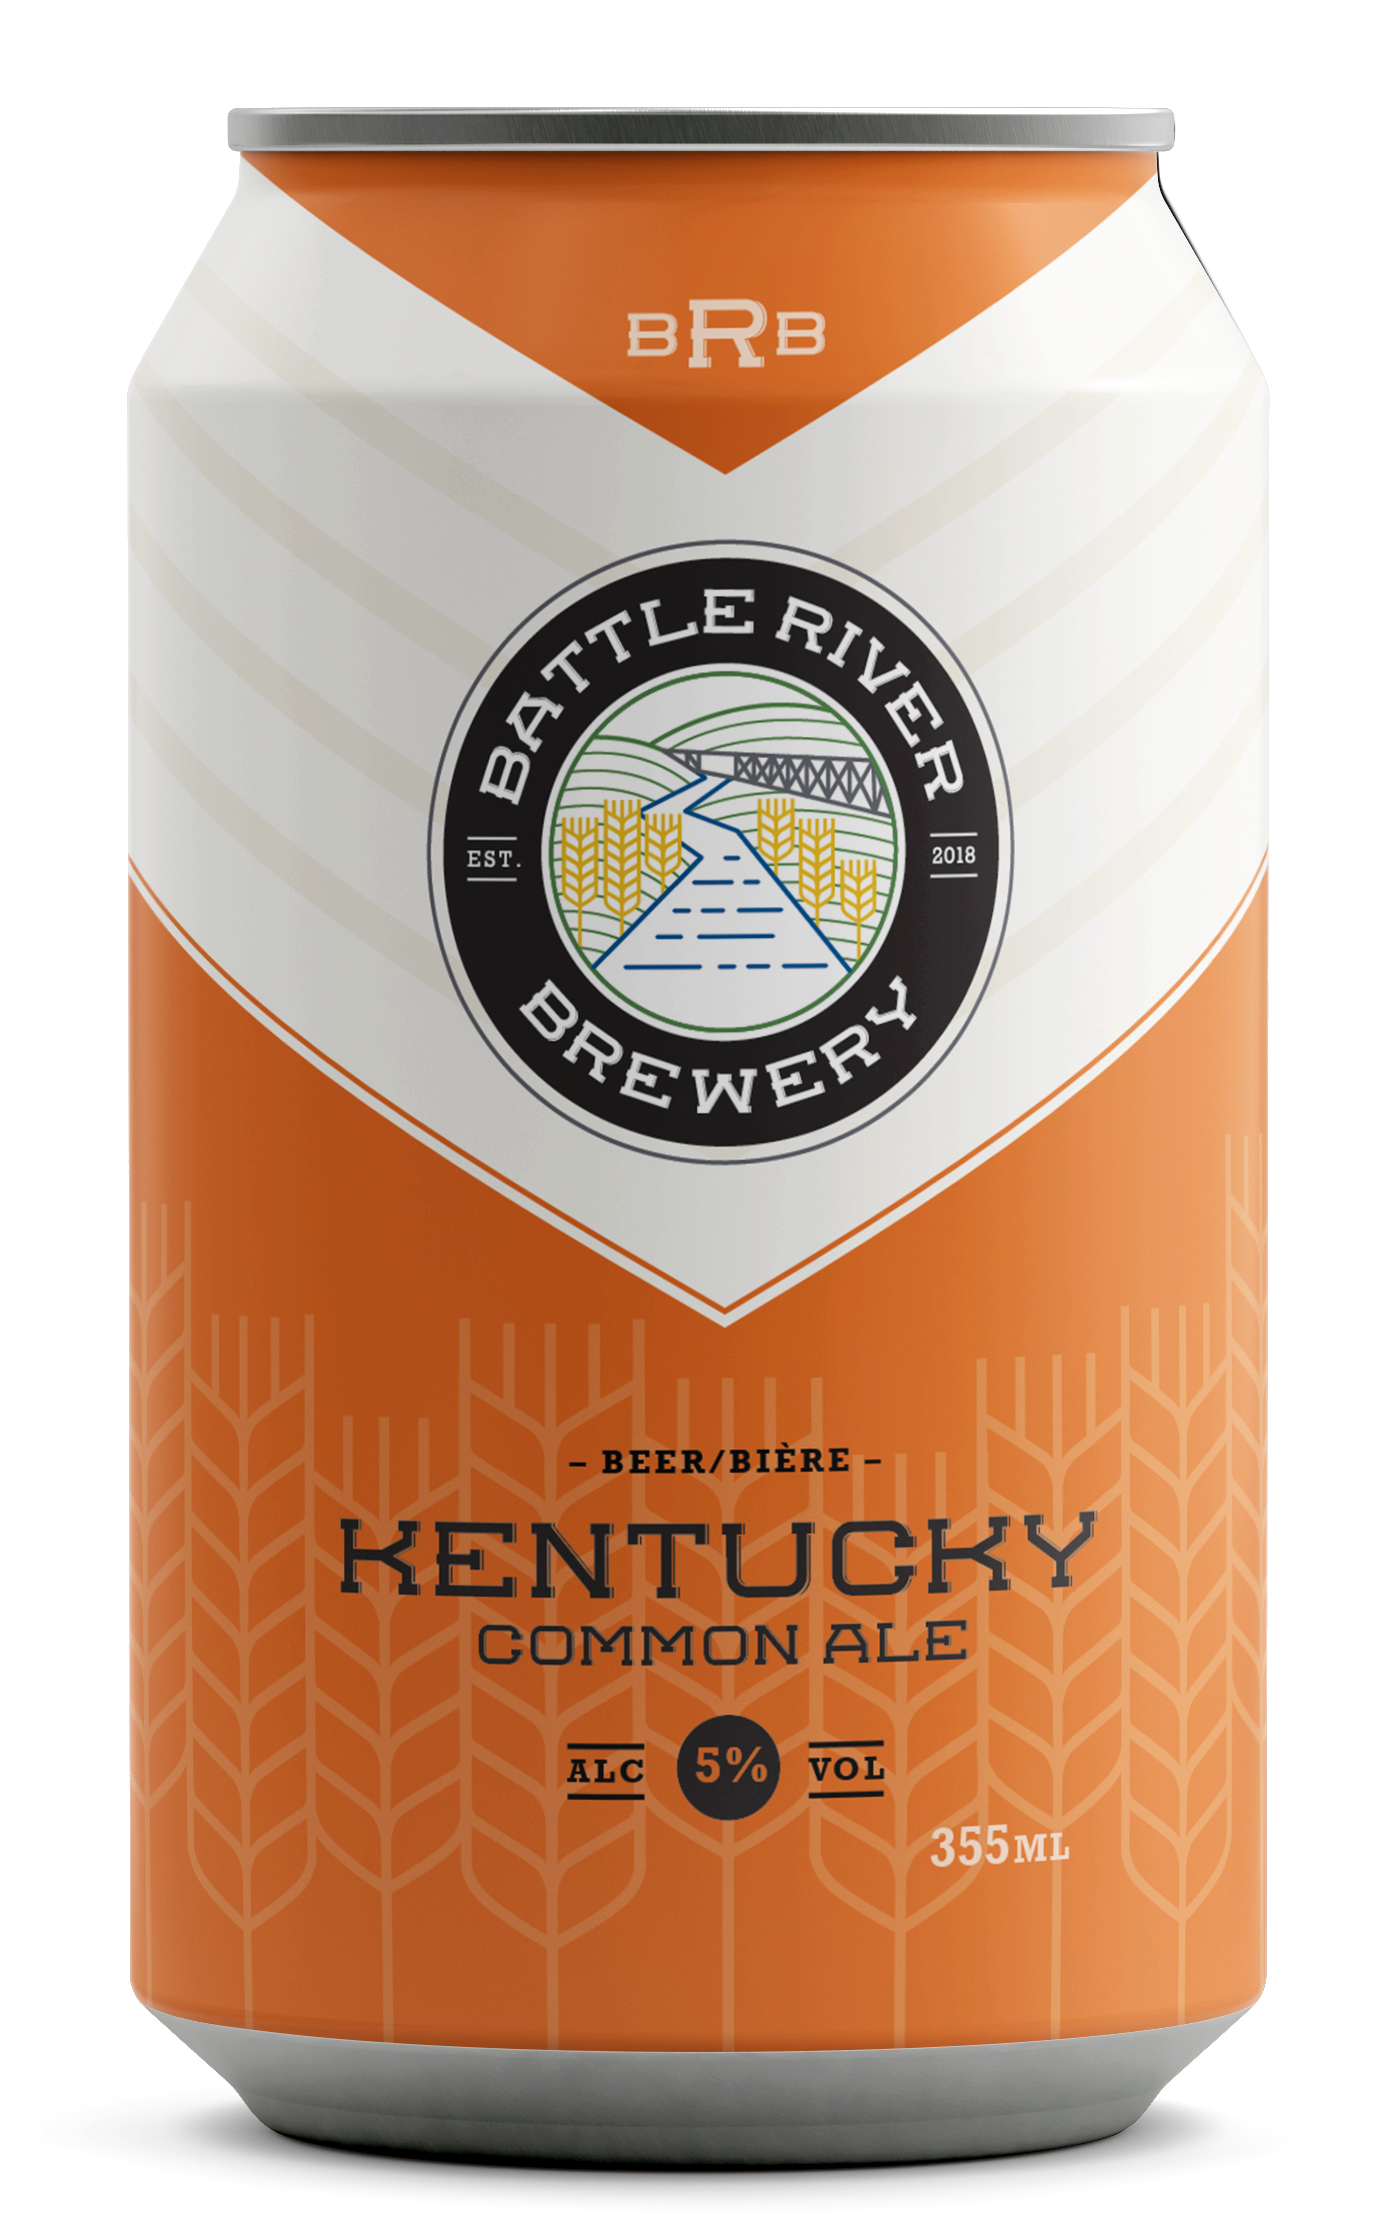 BattleRiverBrewery_Kentucky_Common_Ale.png